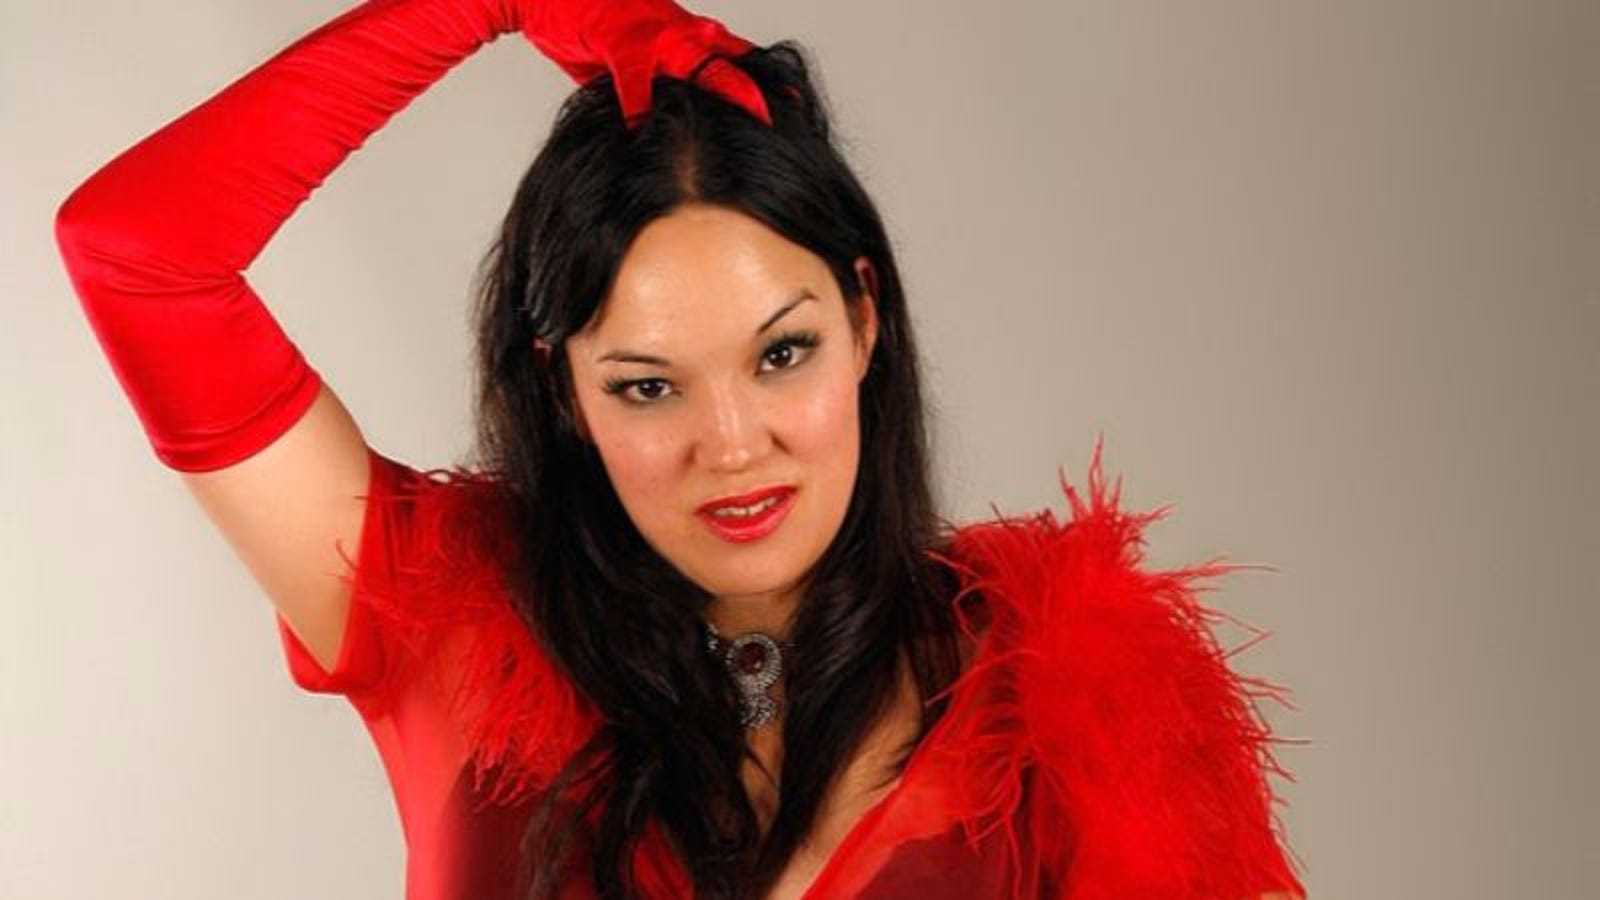 Director Anna Biller on the radical pleasures and subversive